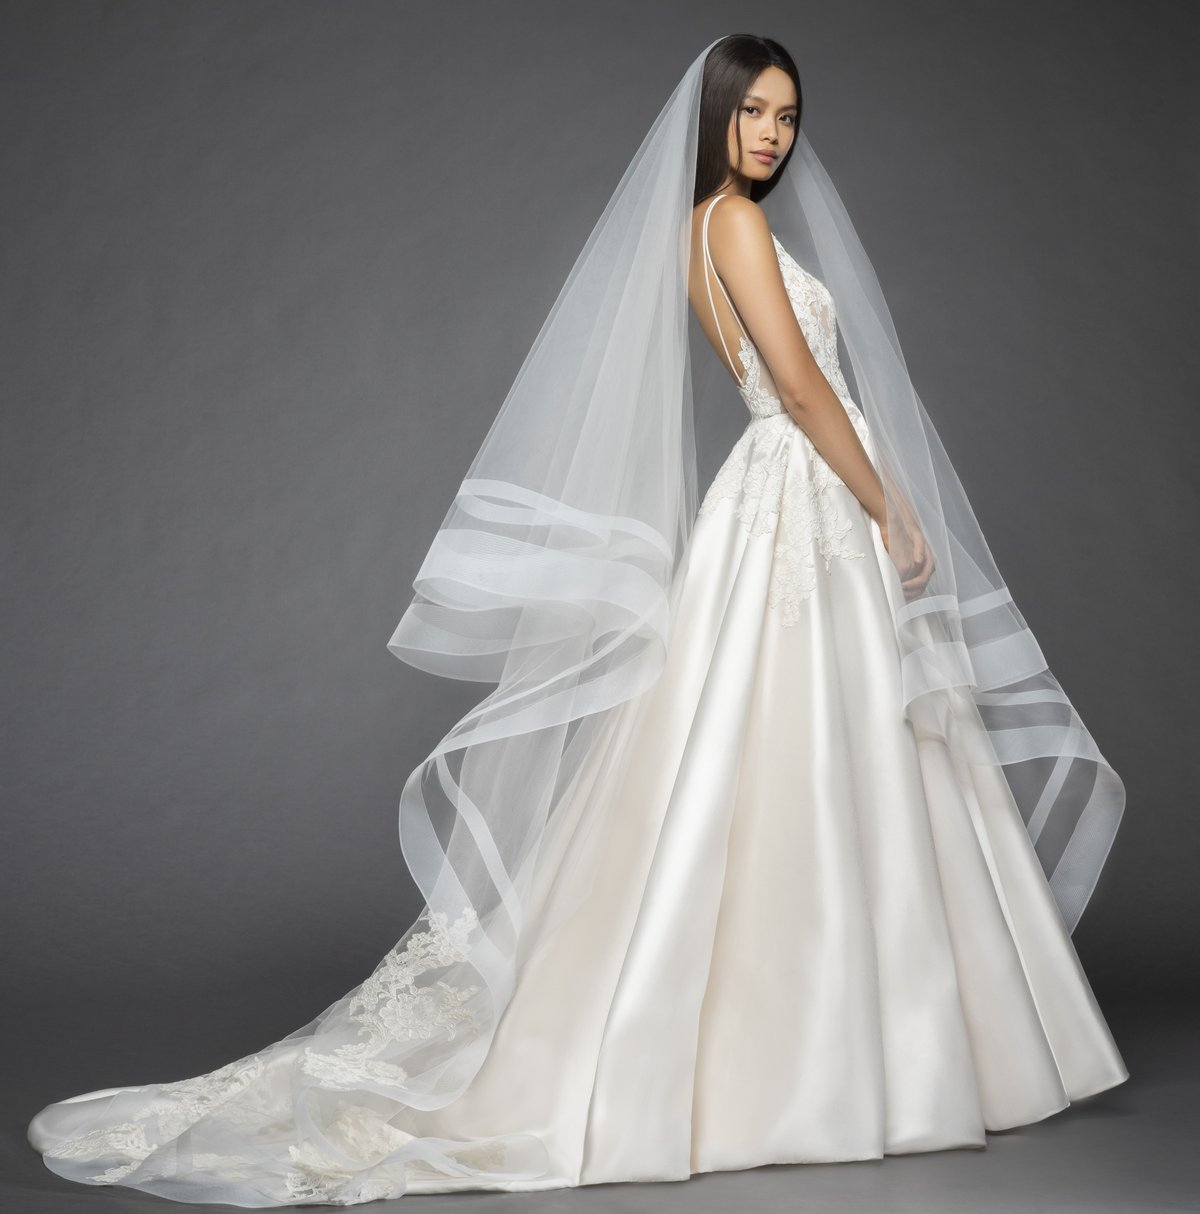 Wedding Gowns By Lazaro: Magic In The Movement: The New Lazaro Fall 2018 Wedding